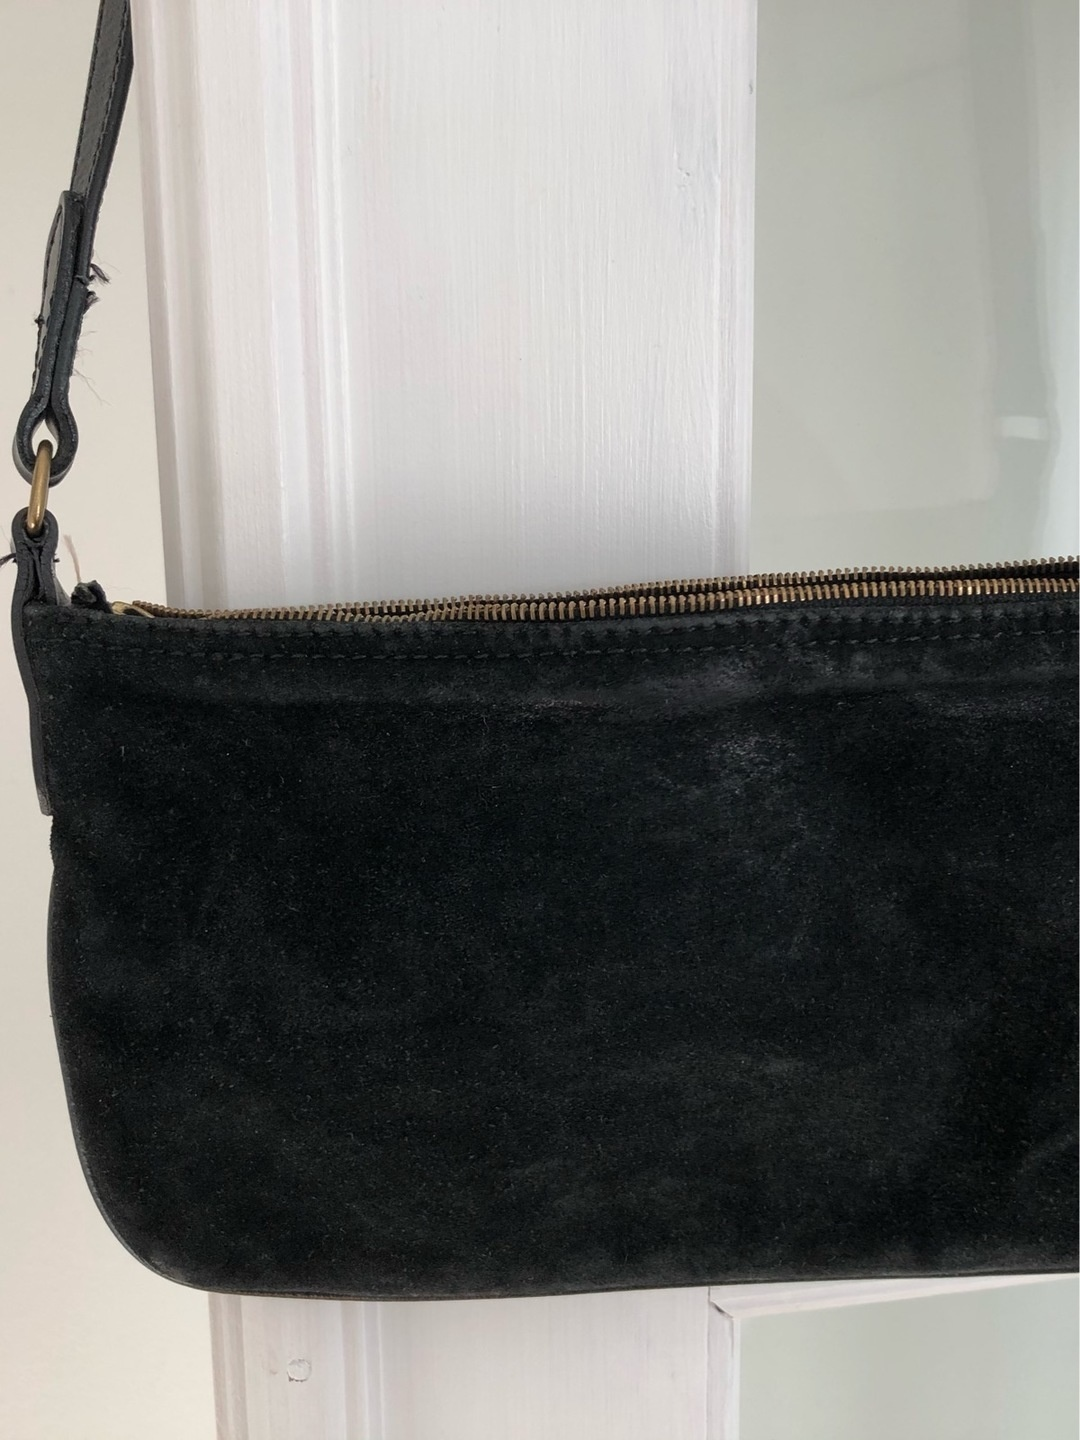 Women's bags & purses - MULBERRY photo 2